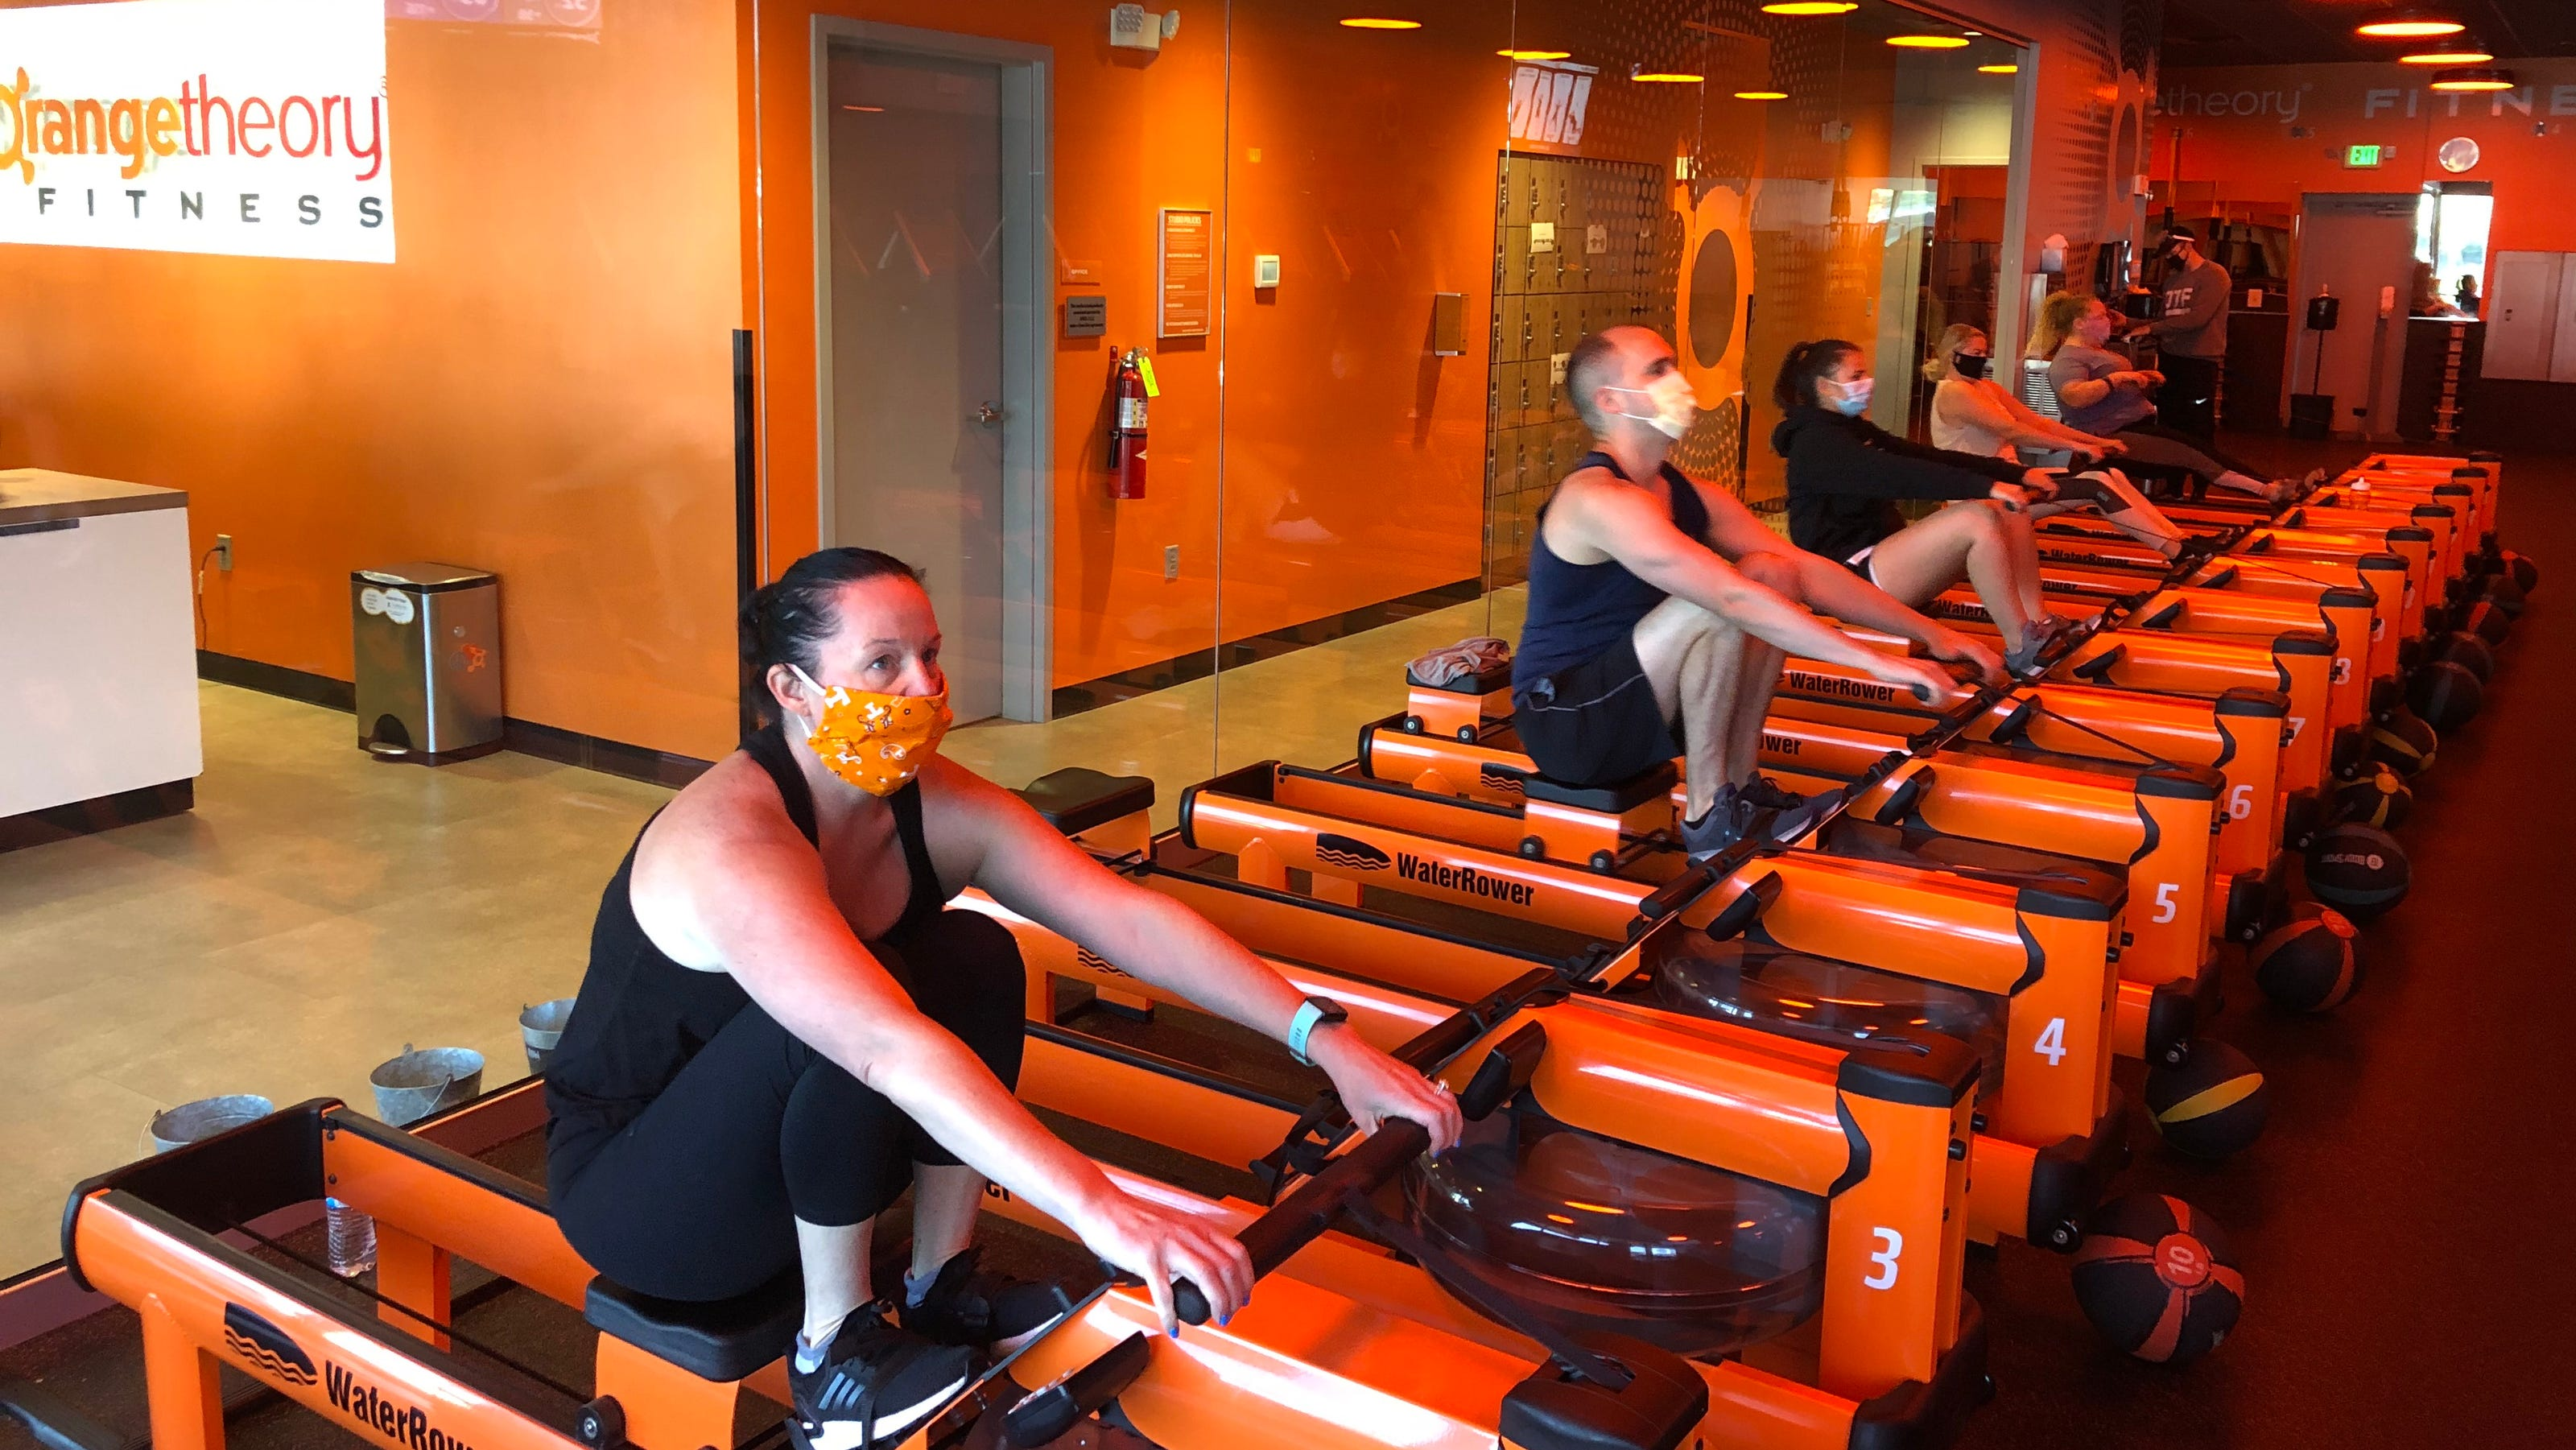 Face Masks At The Gym To Wear Or Not To Wear